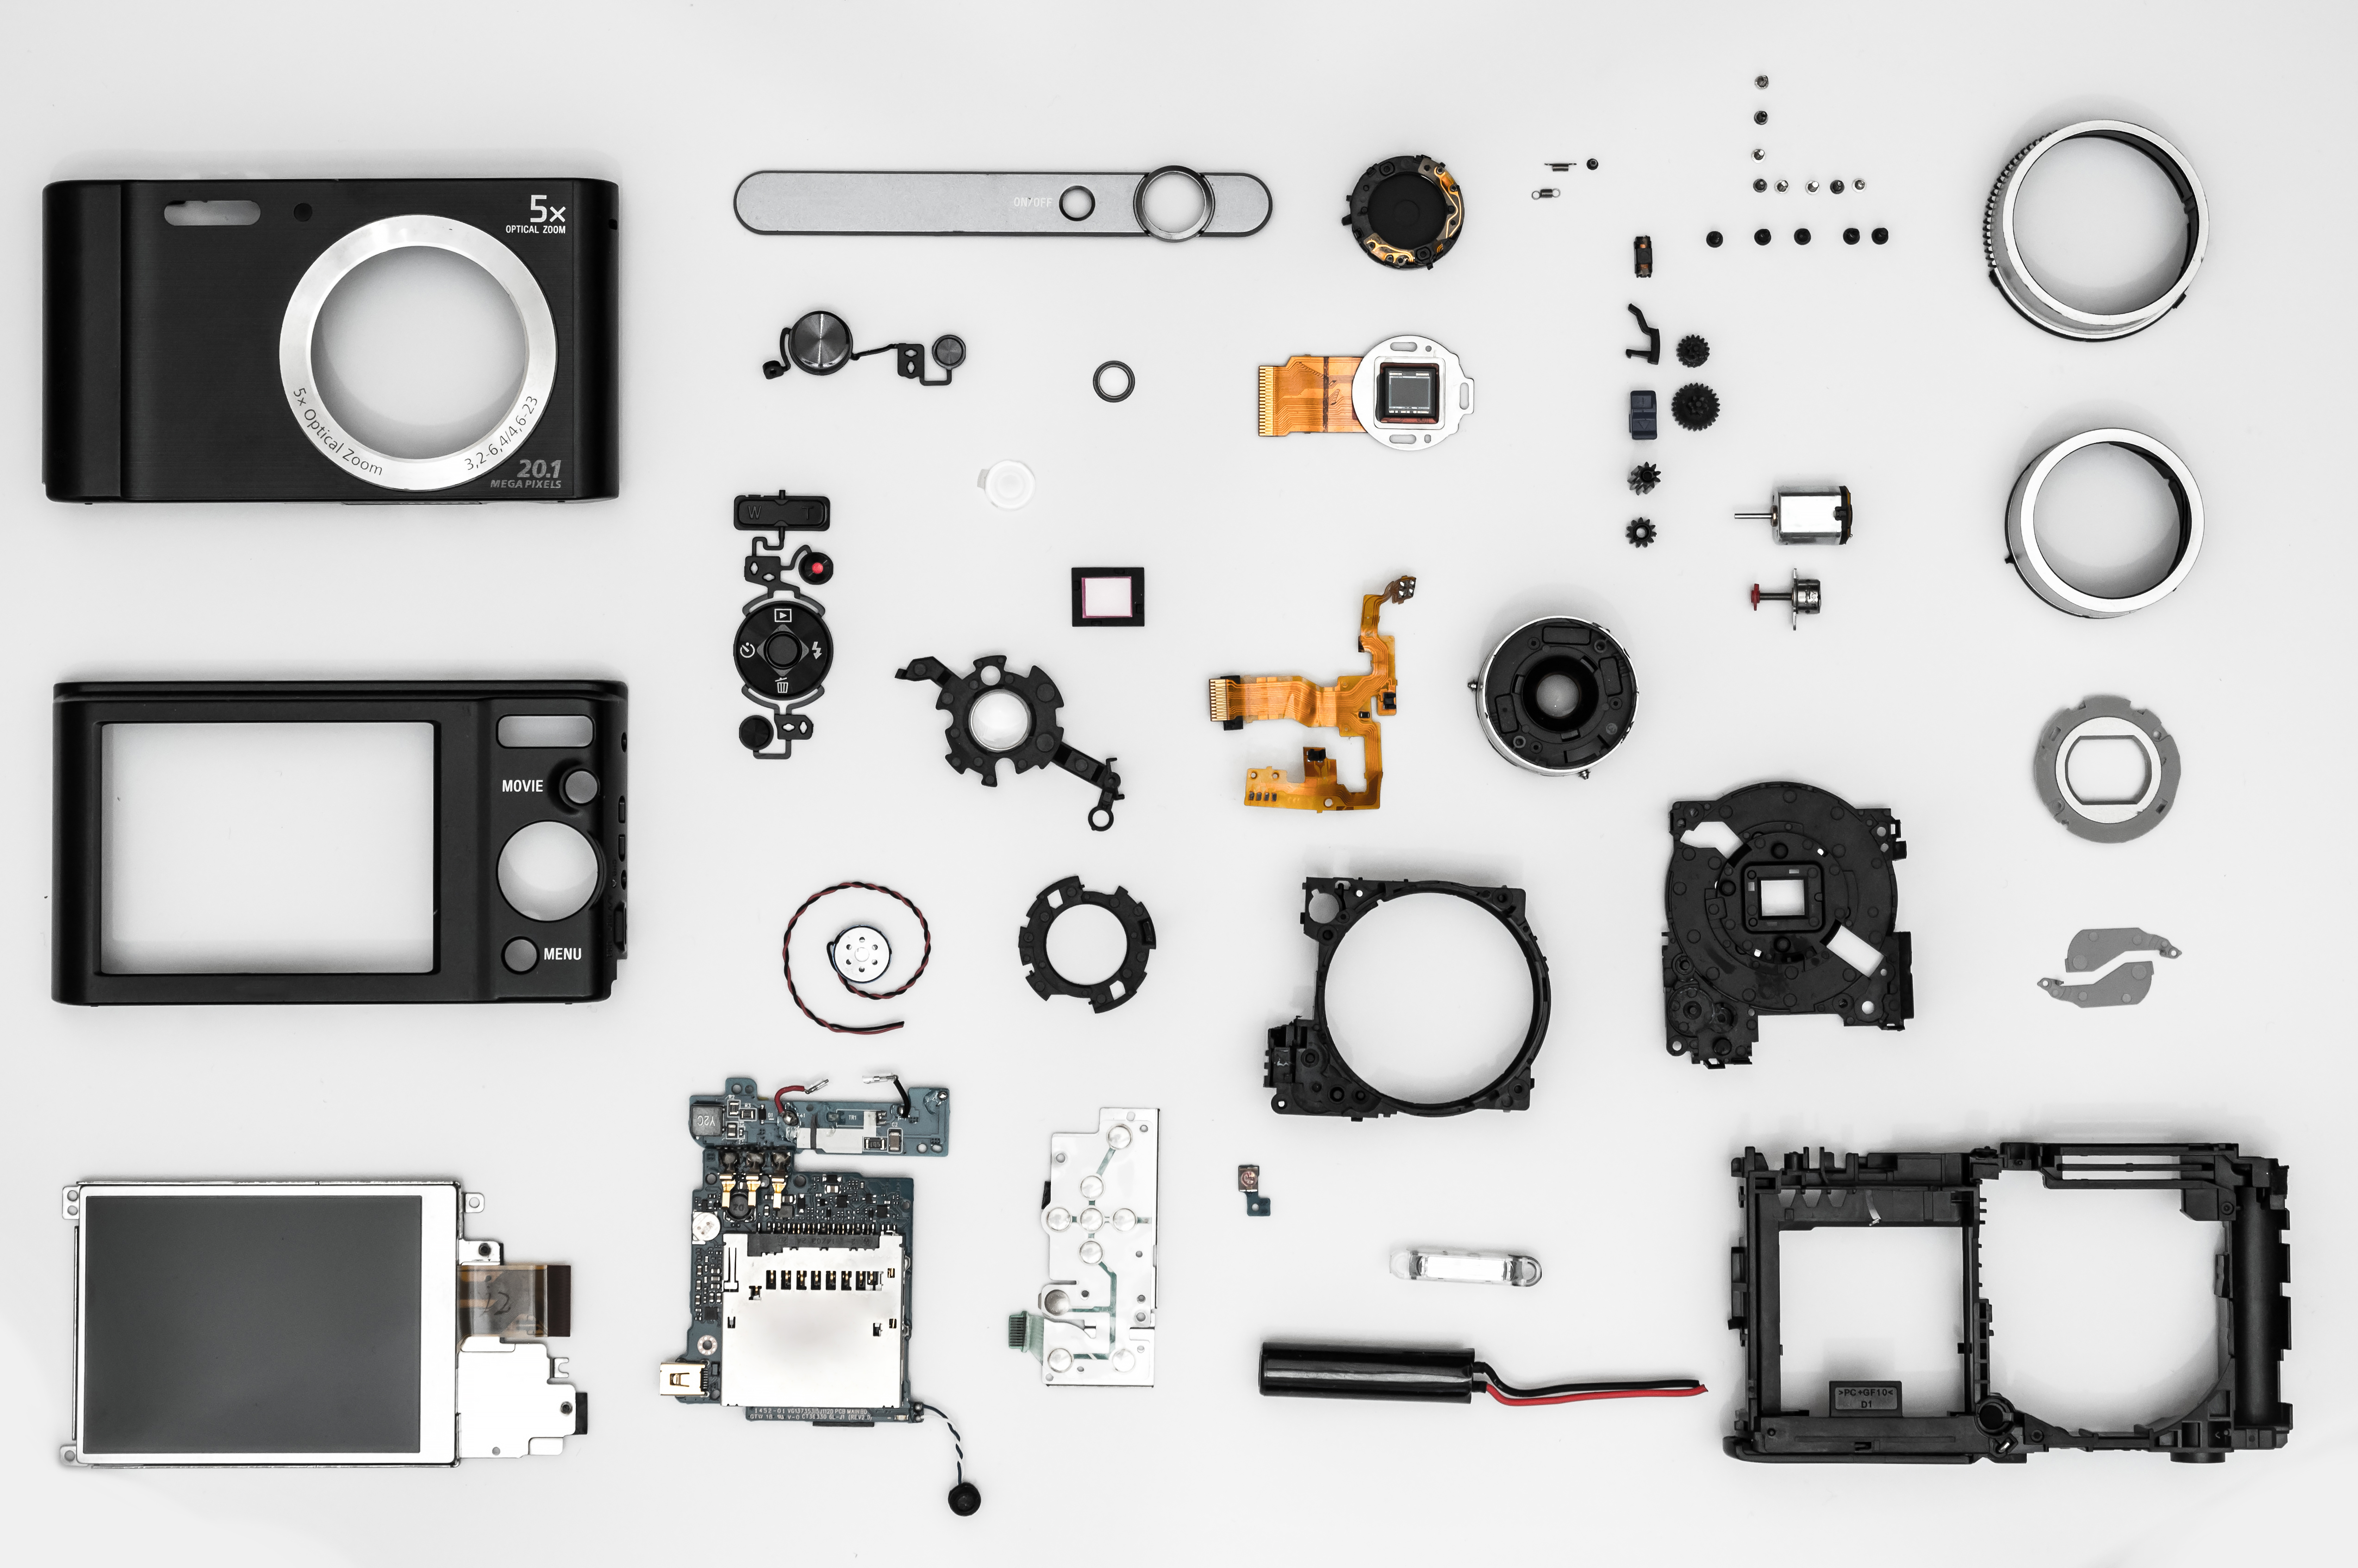 canva-black-camera-accessory-lot.jpg